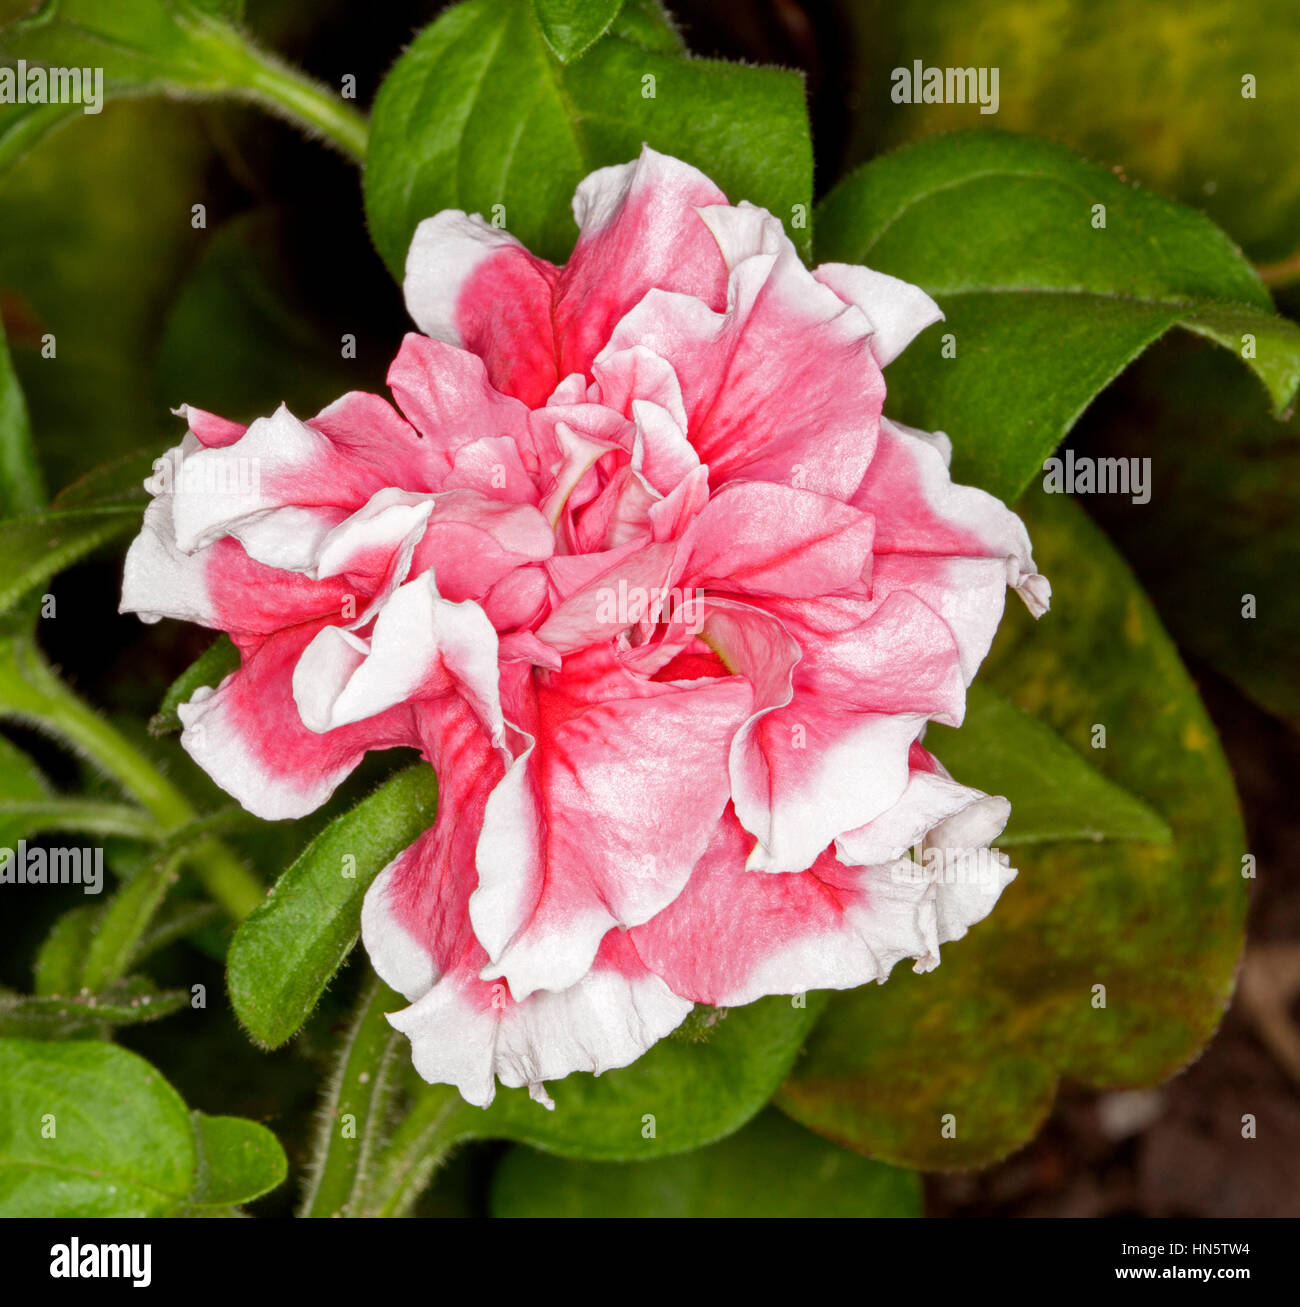 Pink flowers white edges stock photos pink flowers white edges spectacular vivid pink flower of petunia with white edges to frilly double petals on background of mightylinksfo